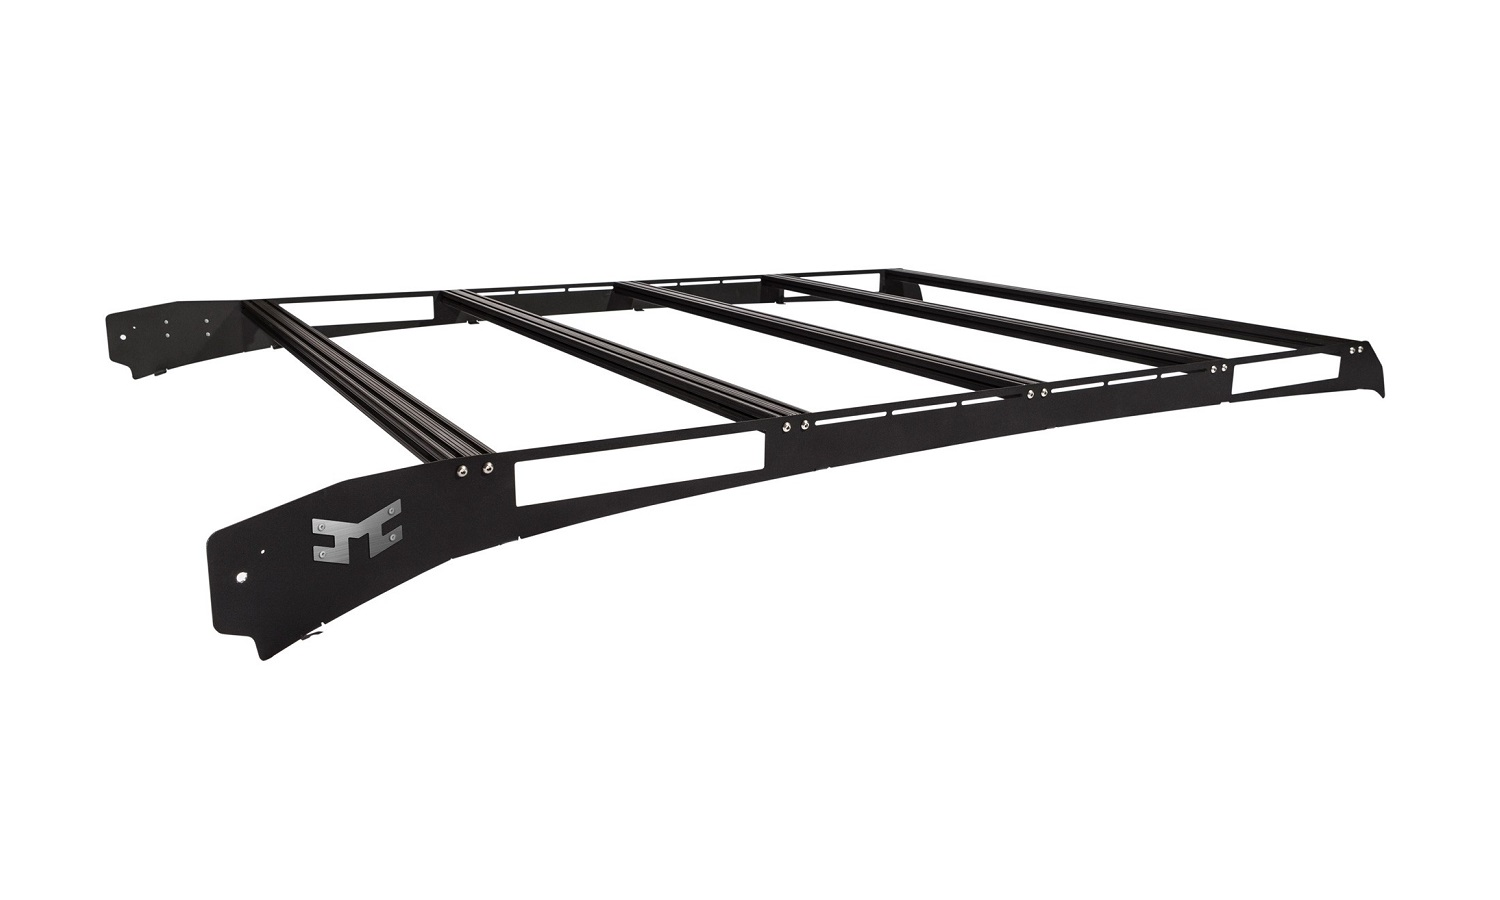 Kc Introduces M Rack Performance Roof Racks